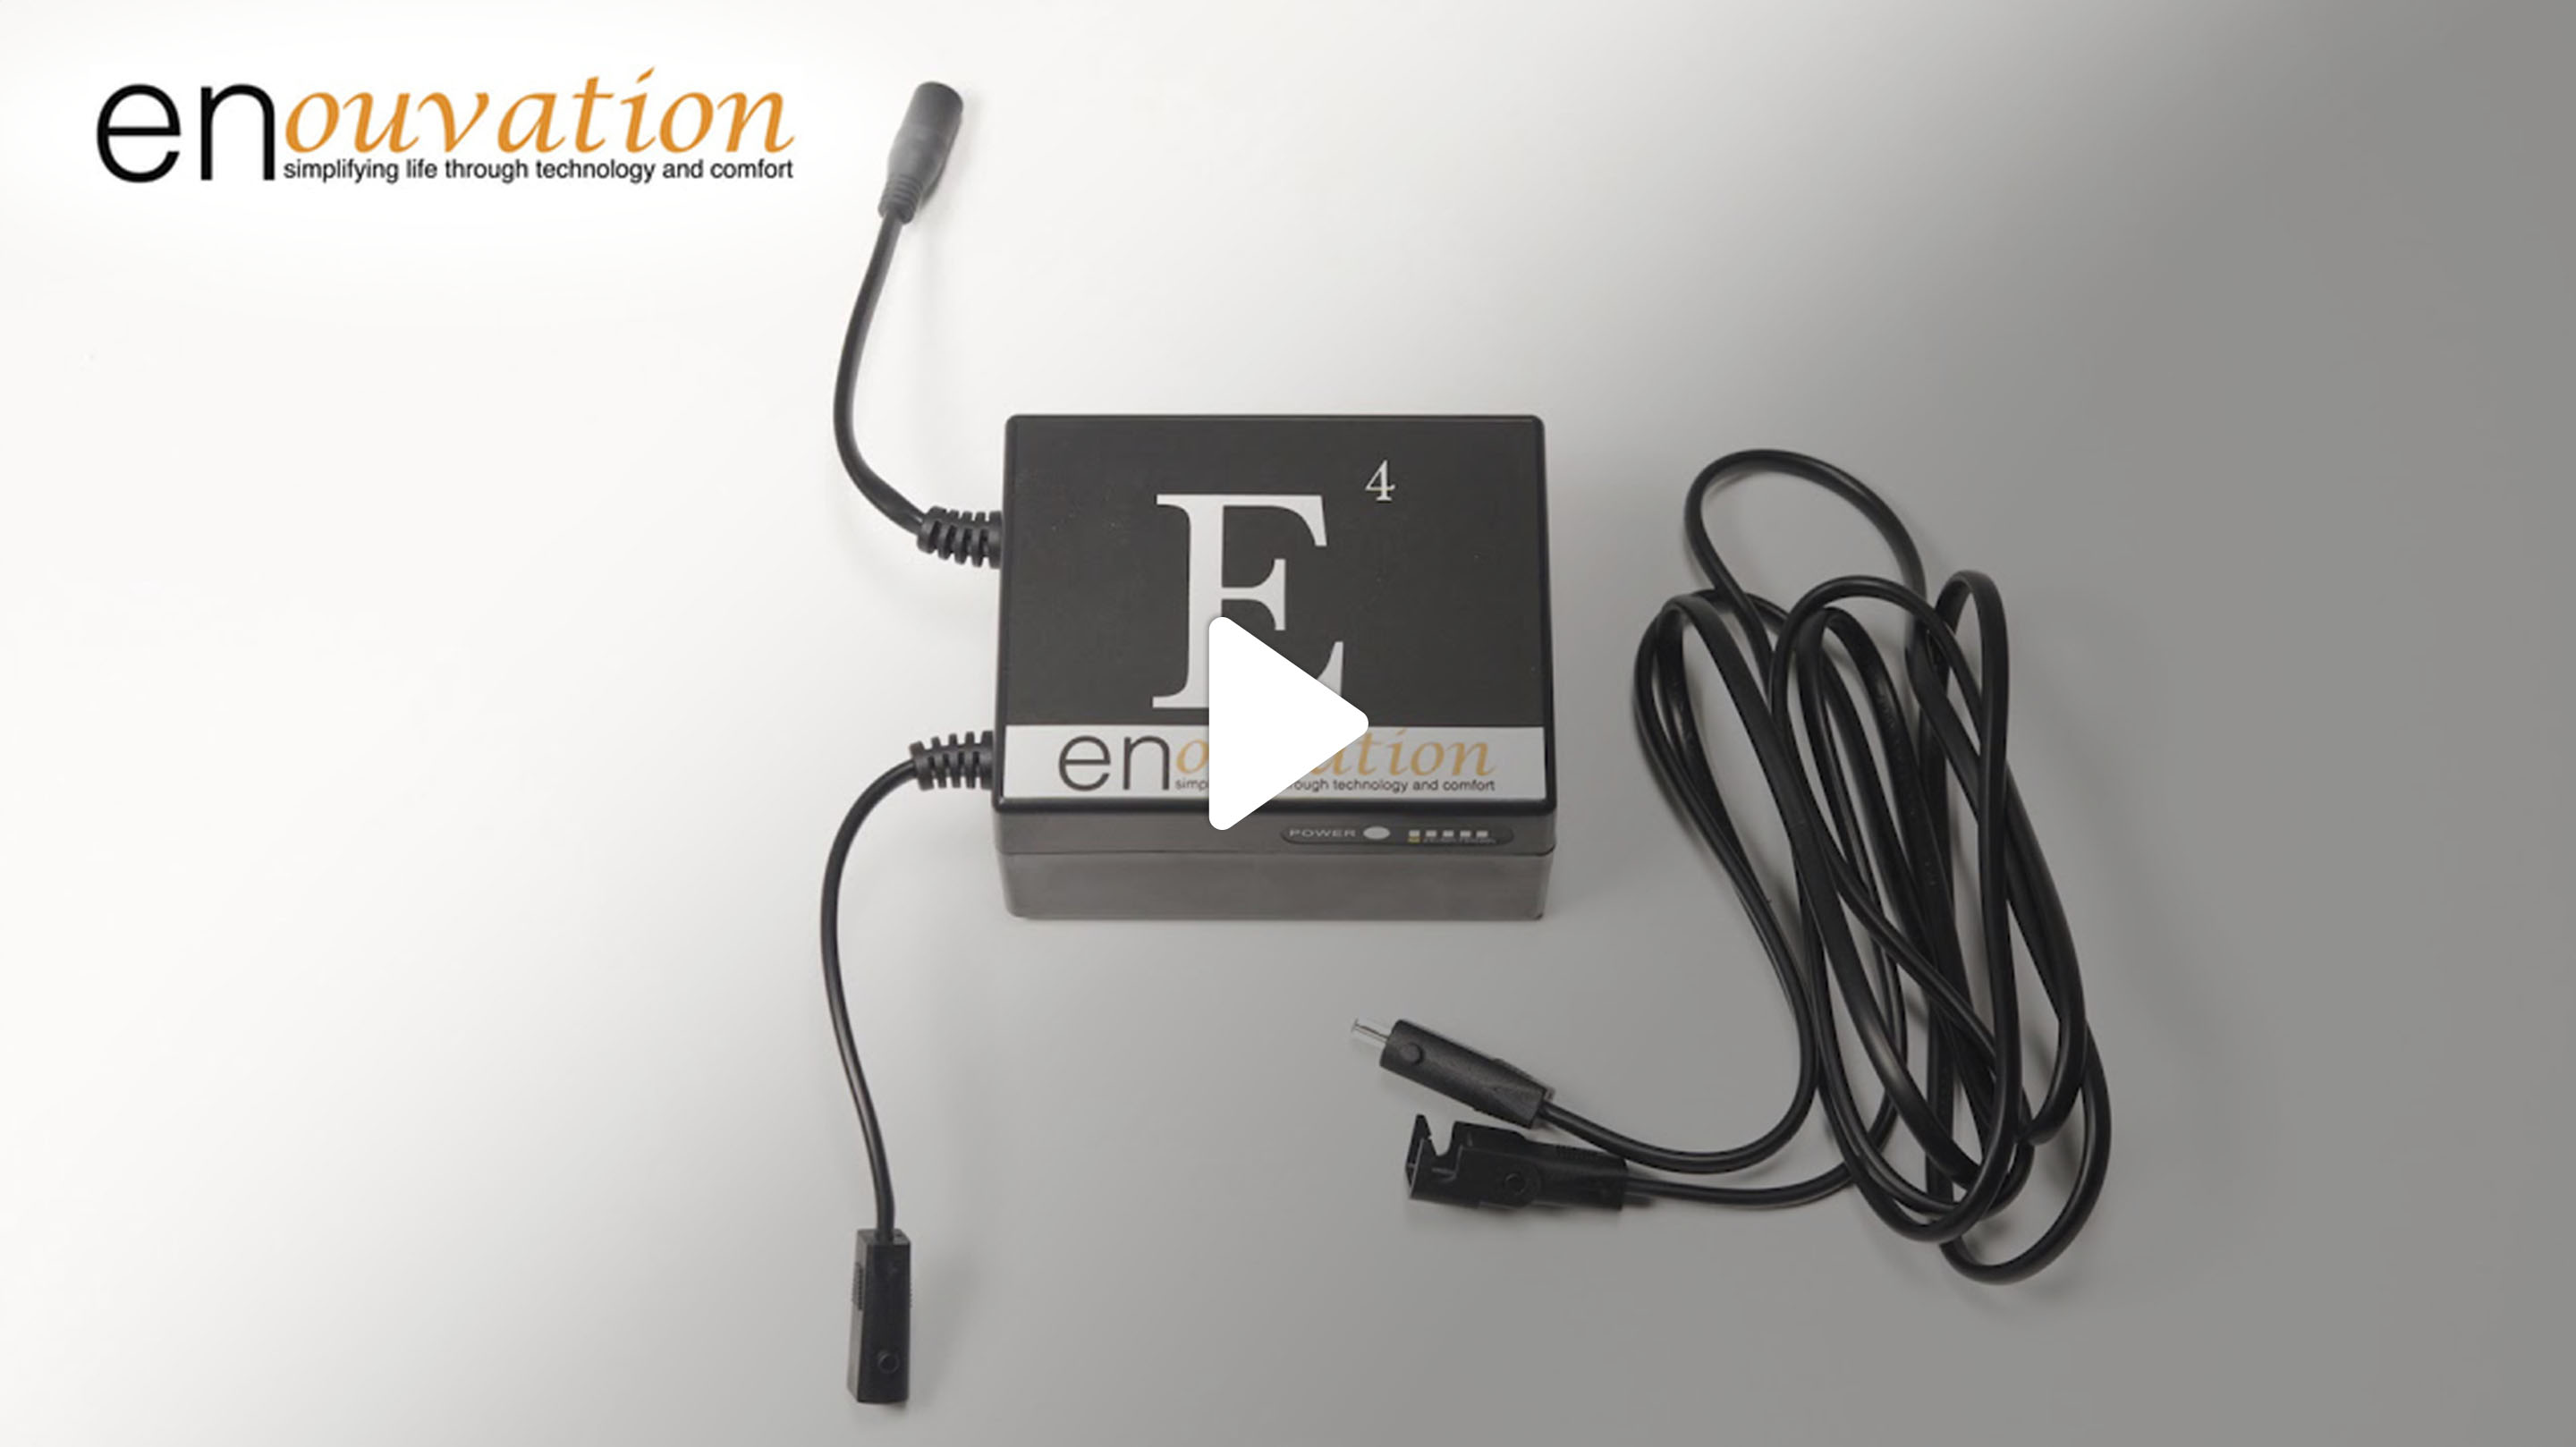 Enouvation Power Pack Installation Guide